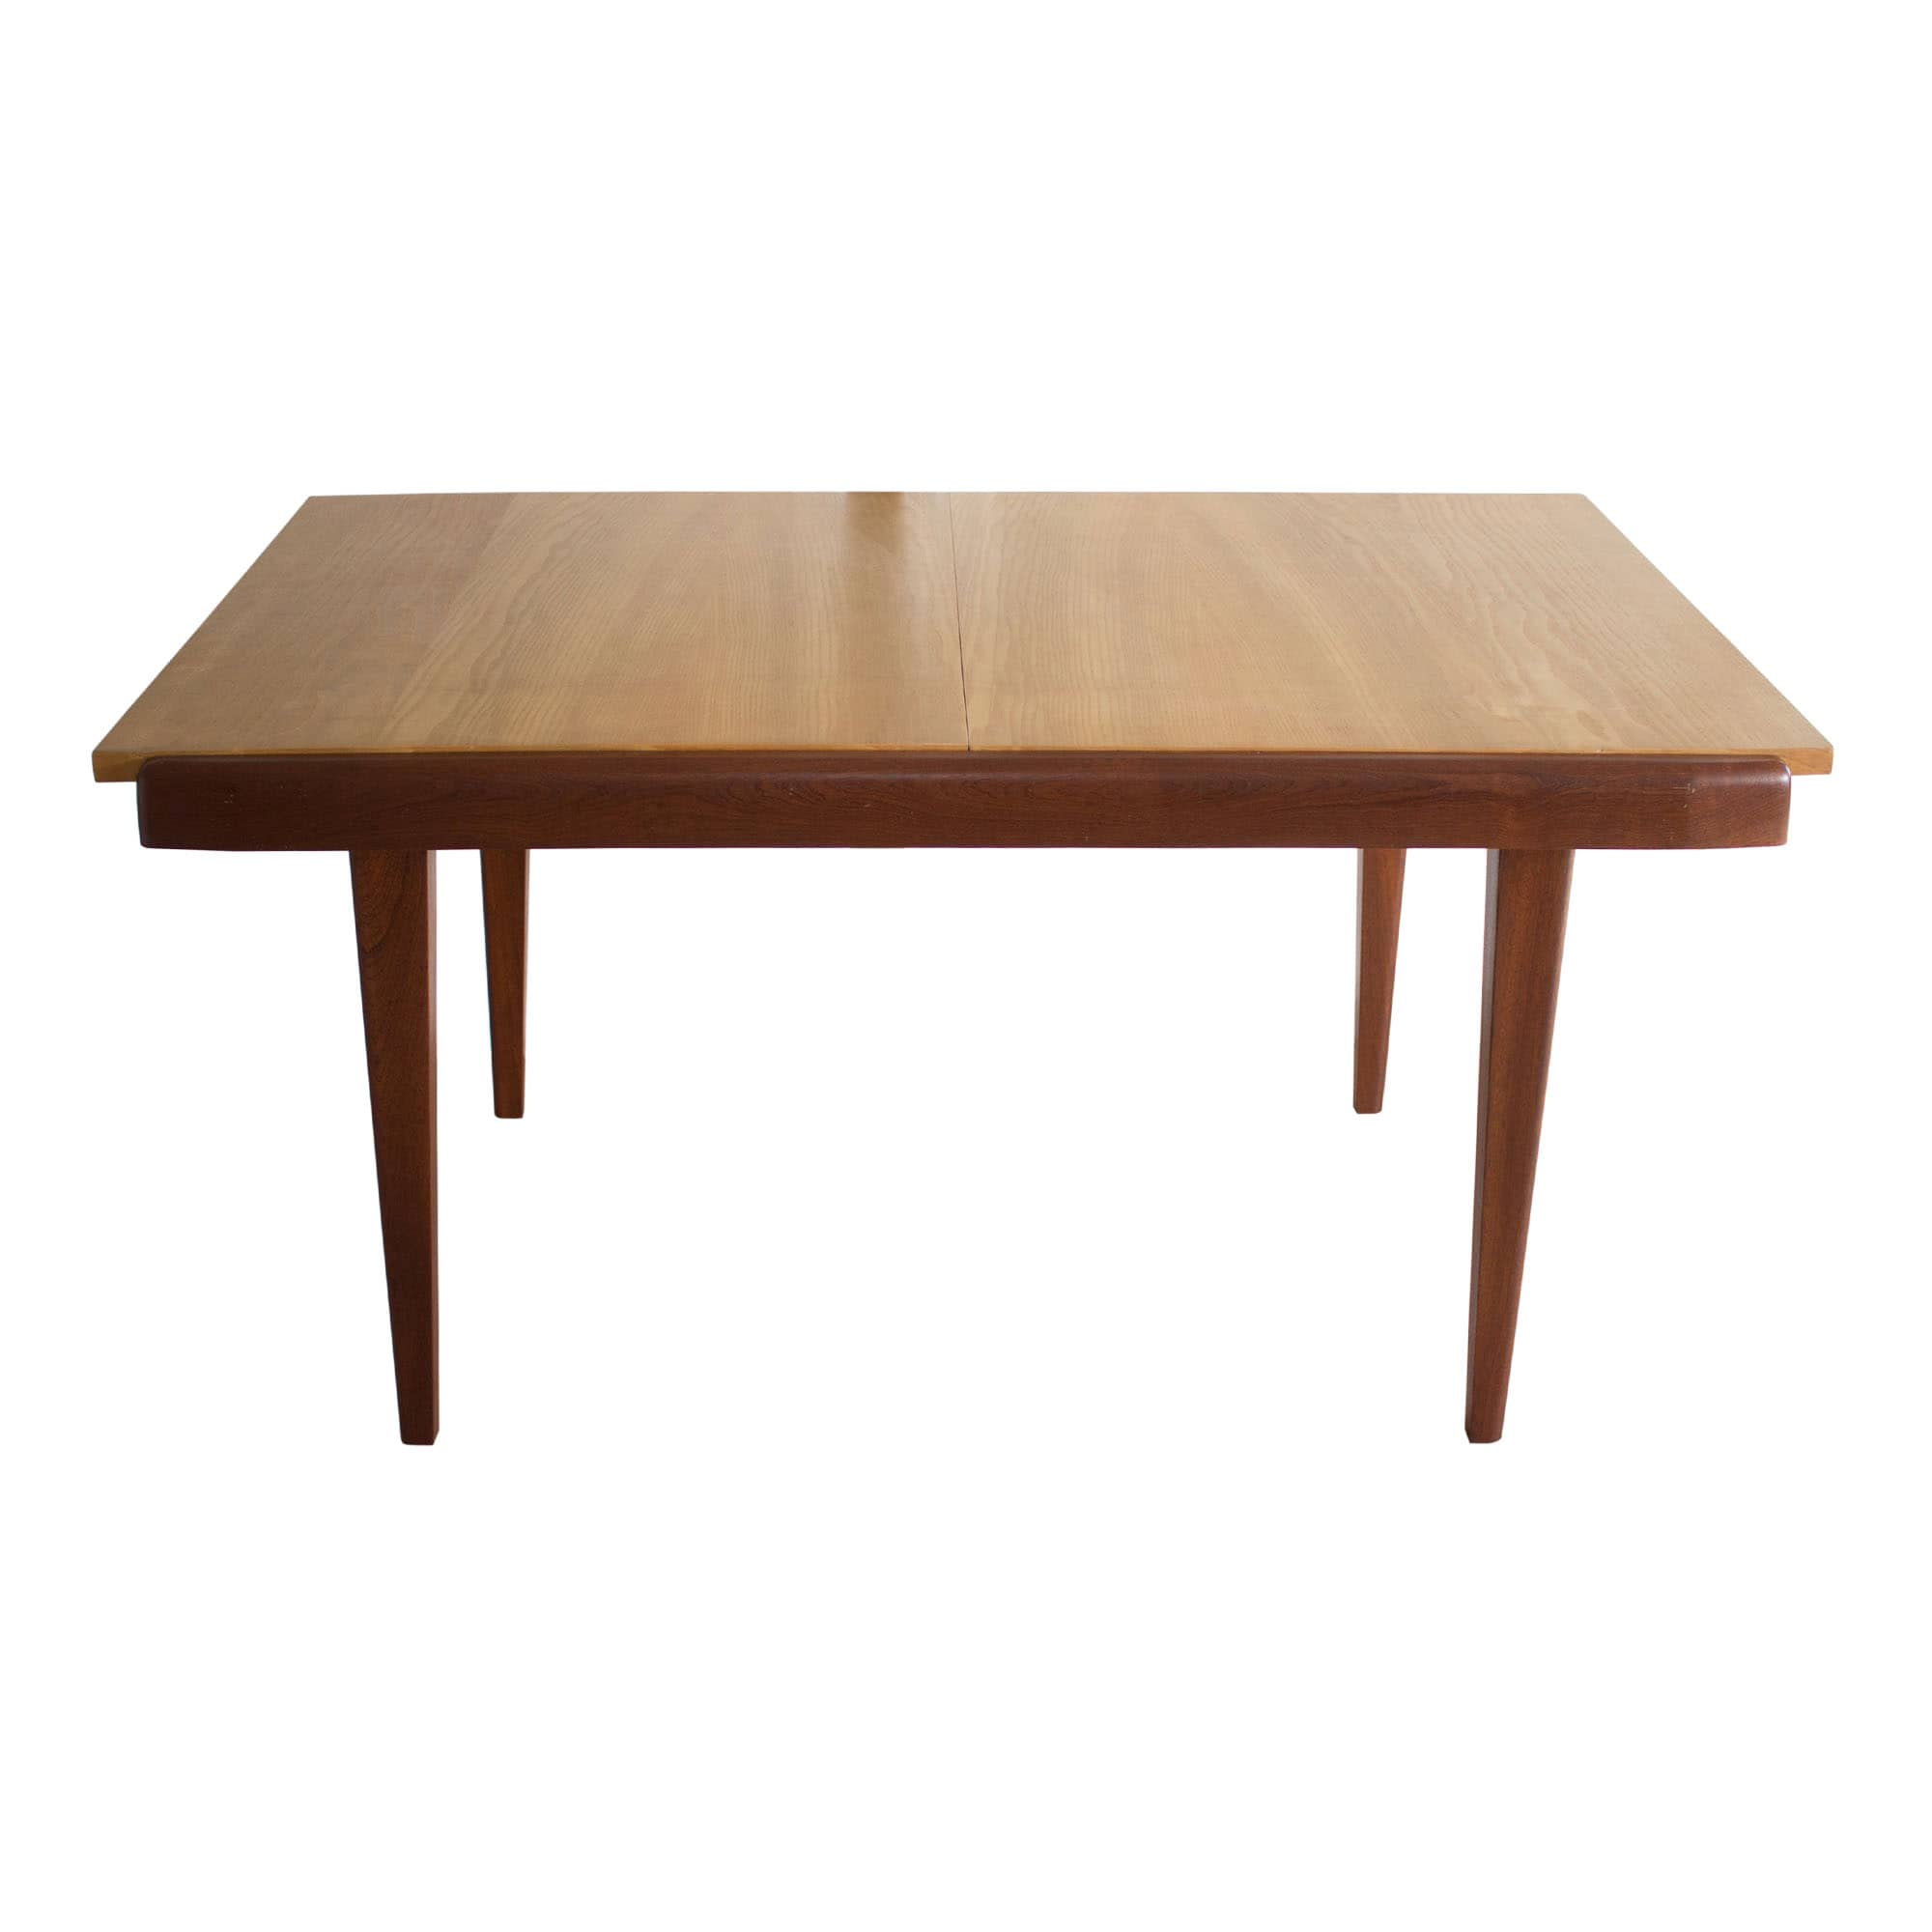 Extendable dining table made in France in the 1960s